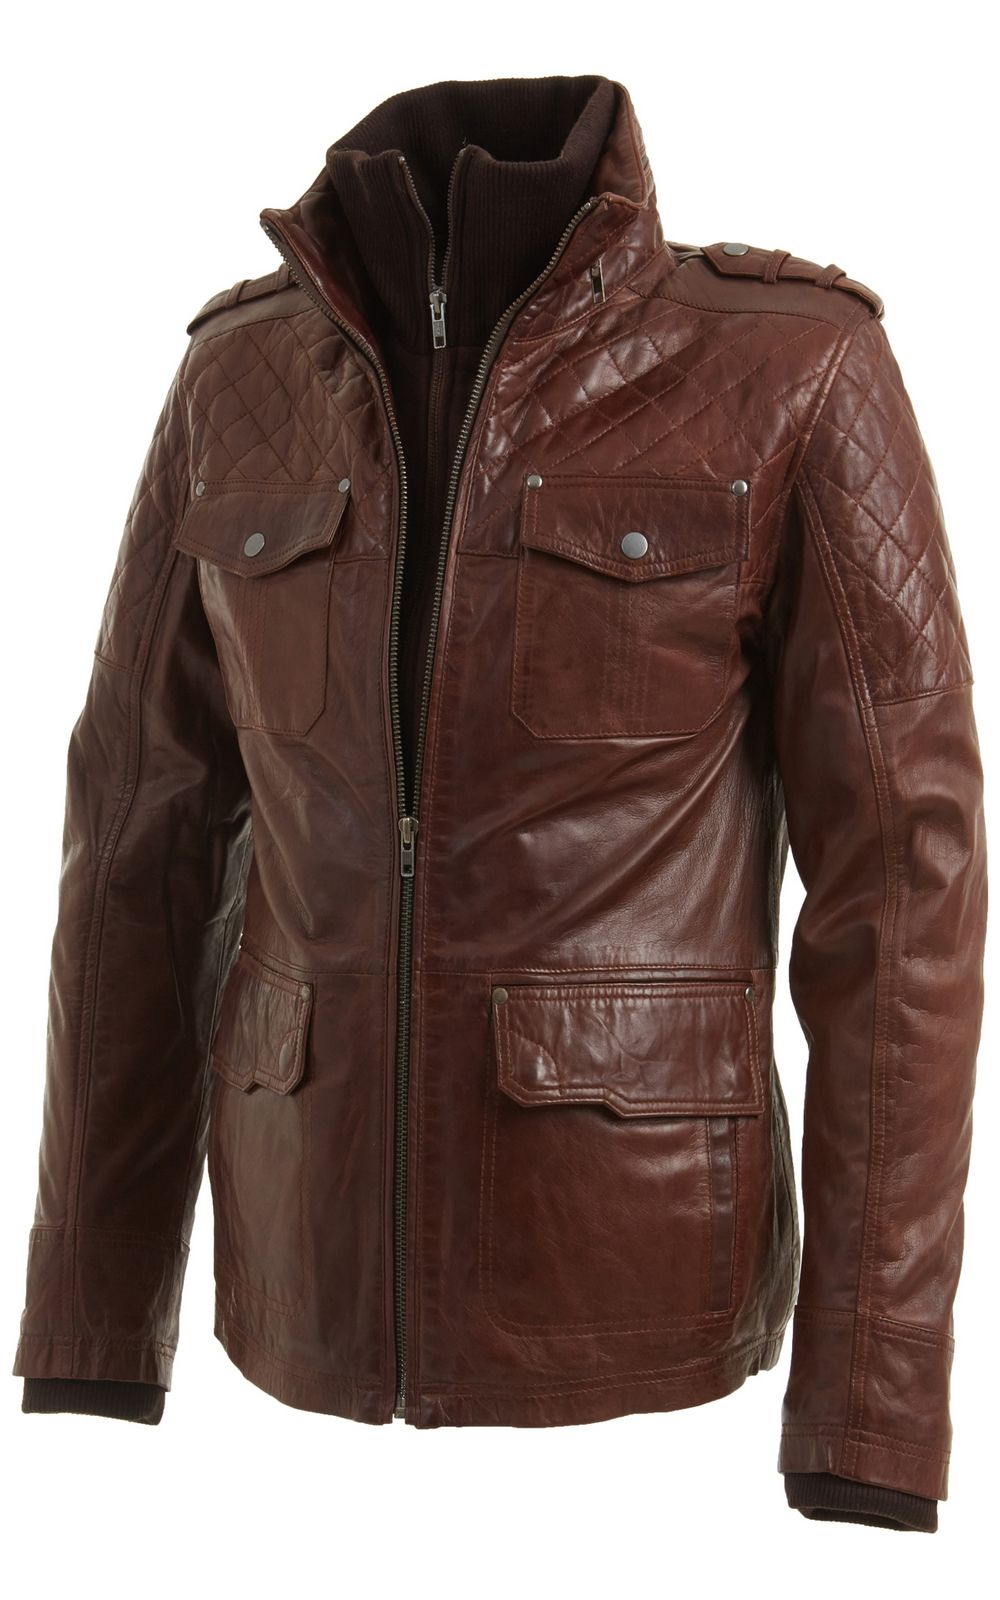 17 Best images about Mens Leather Jackets on Pinterest | Hooded ...